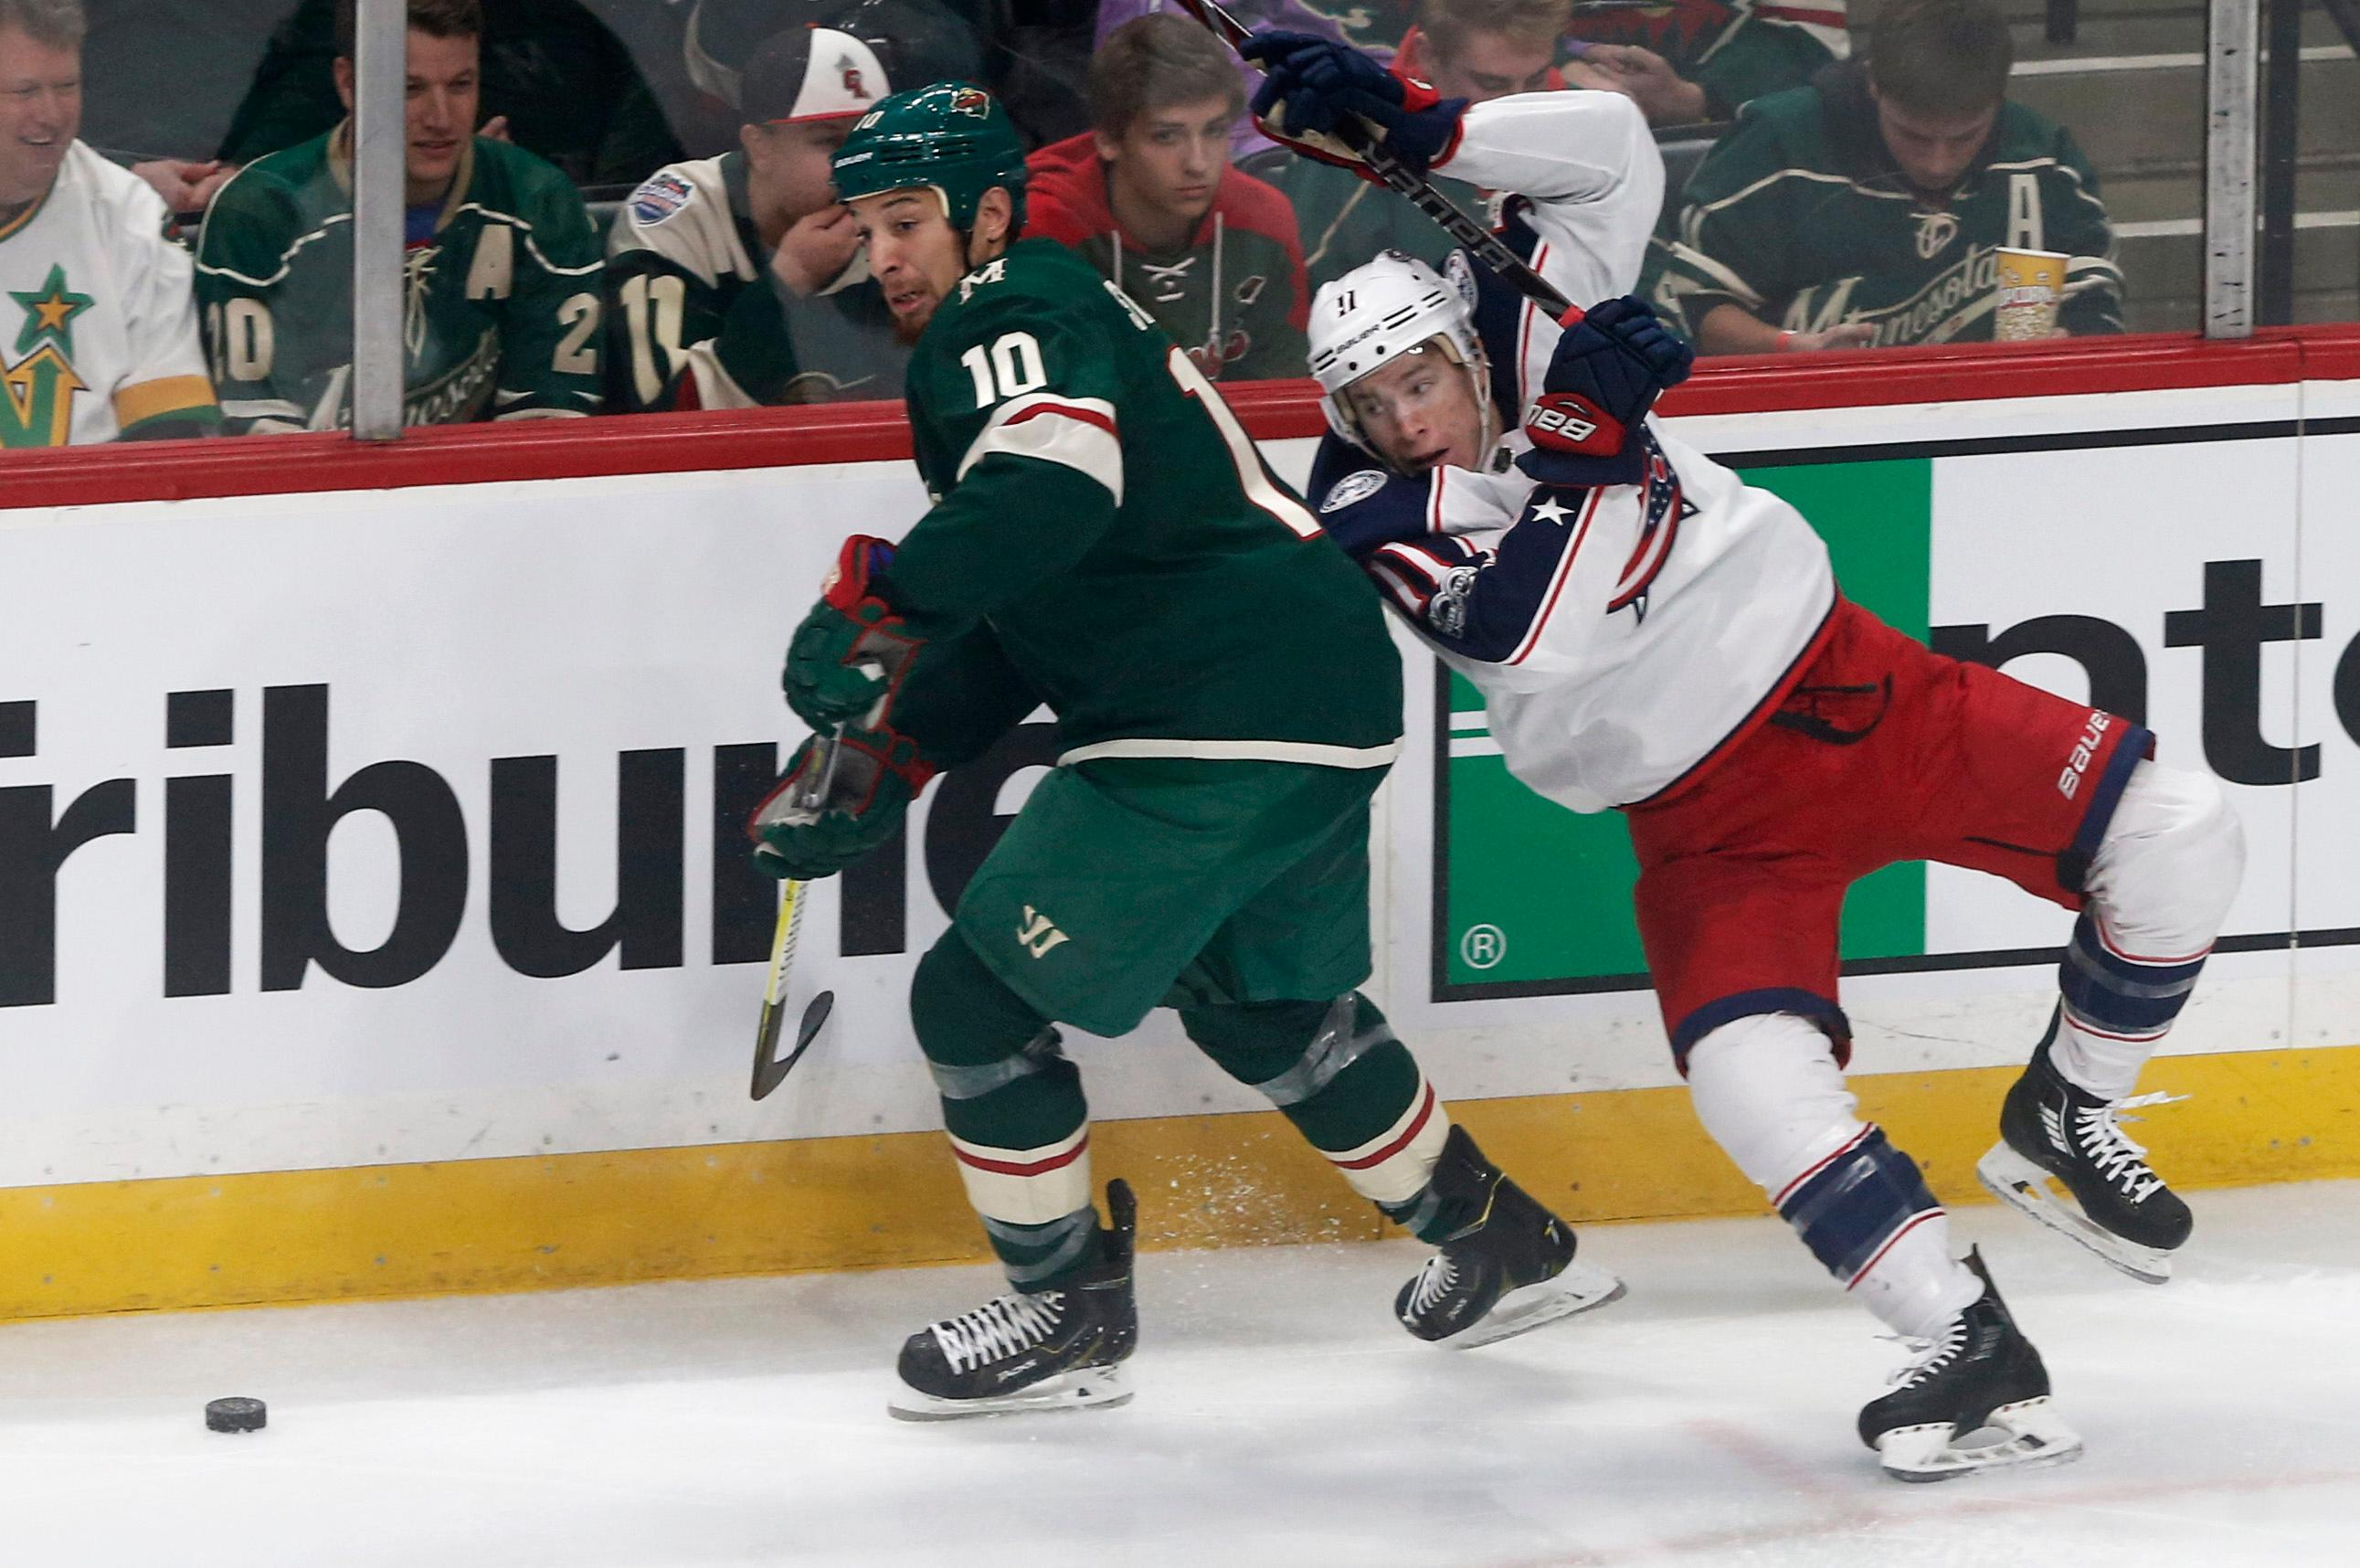 Columbus Blue Jackets' Matt Calvert, right, loses his balance as he and Minnesota Wild's Chris Stewart chase the puck during the first period of an NHL hockey game Saturday, Oct. 14, 2017, in St. Paul, Minn. (AP Photo/Jim Mone)